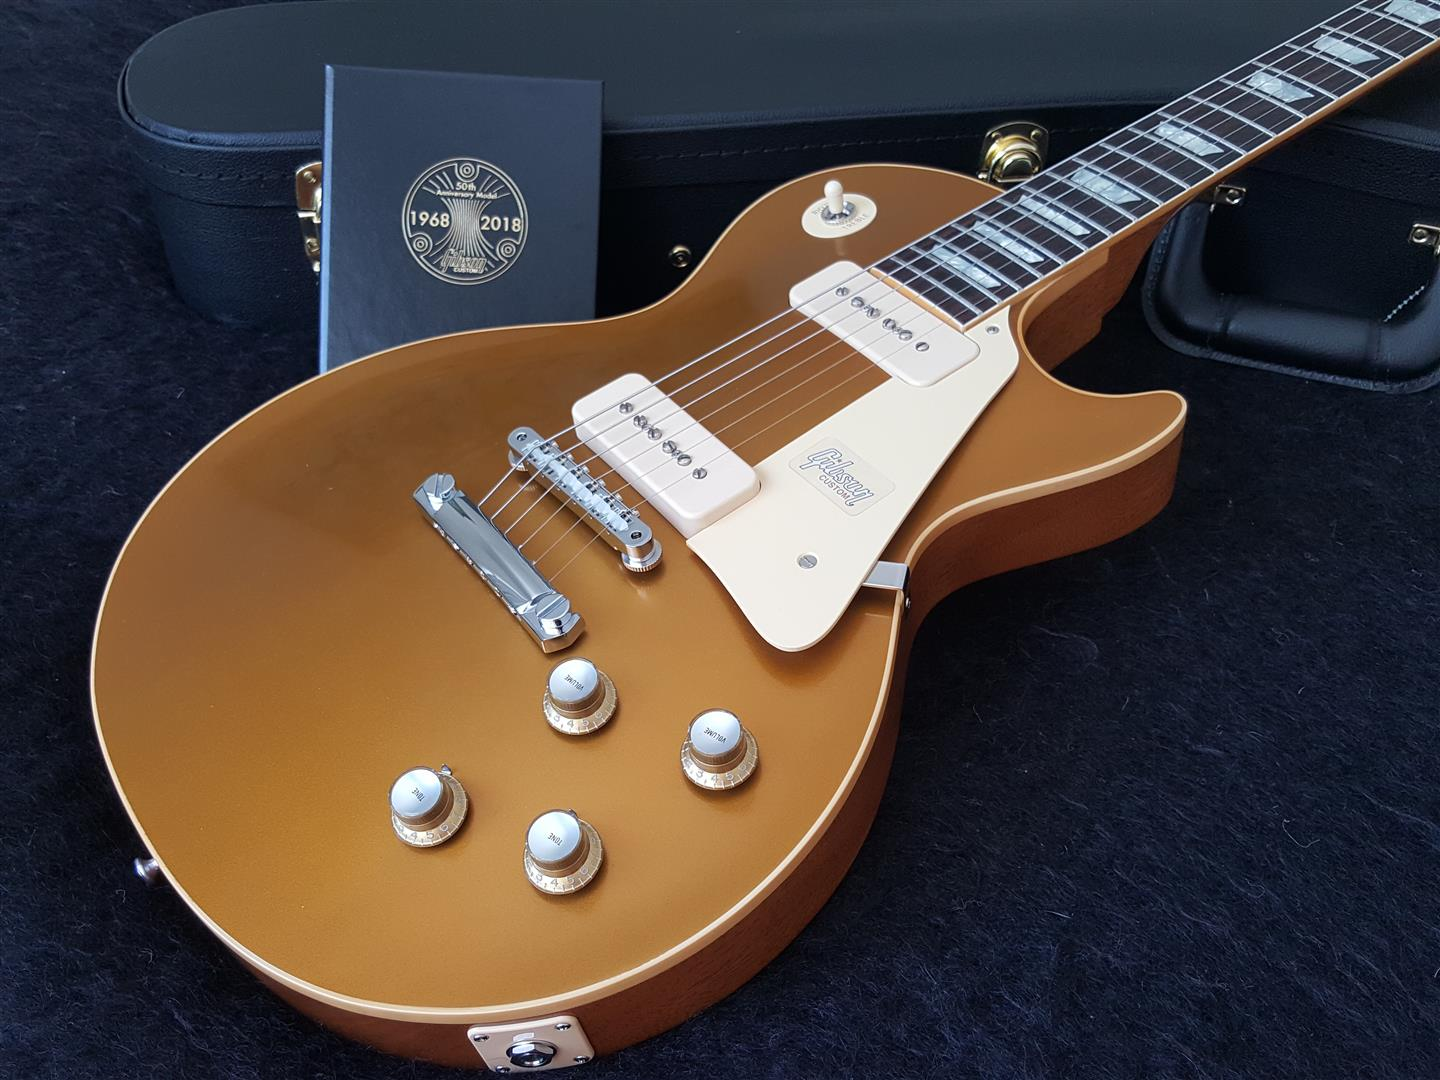 gibson 1968 les paul custom 50th anniversary gold top 60s gold vos guitars rock nz 39 s. Black Bedroom Furniture Sets. Home Design Ideas